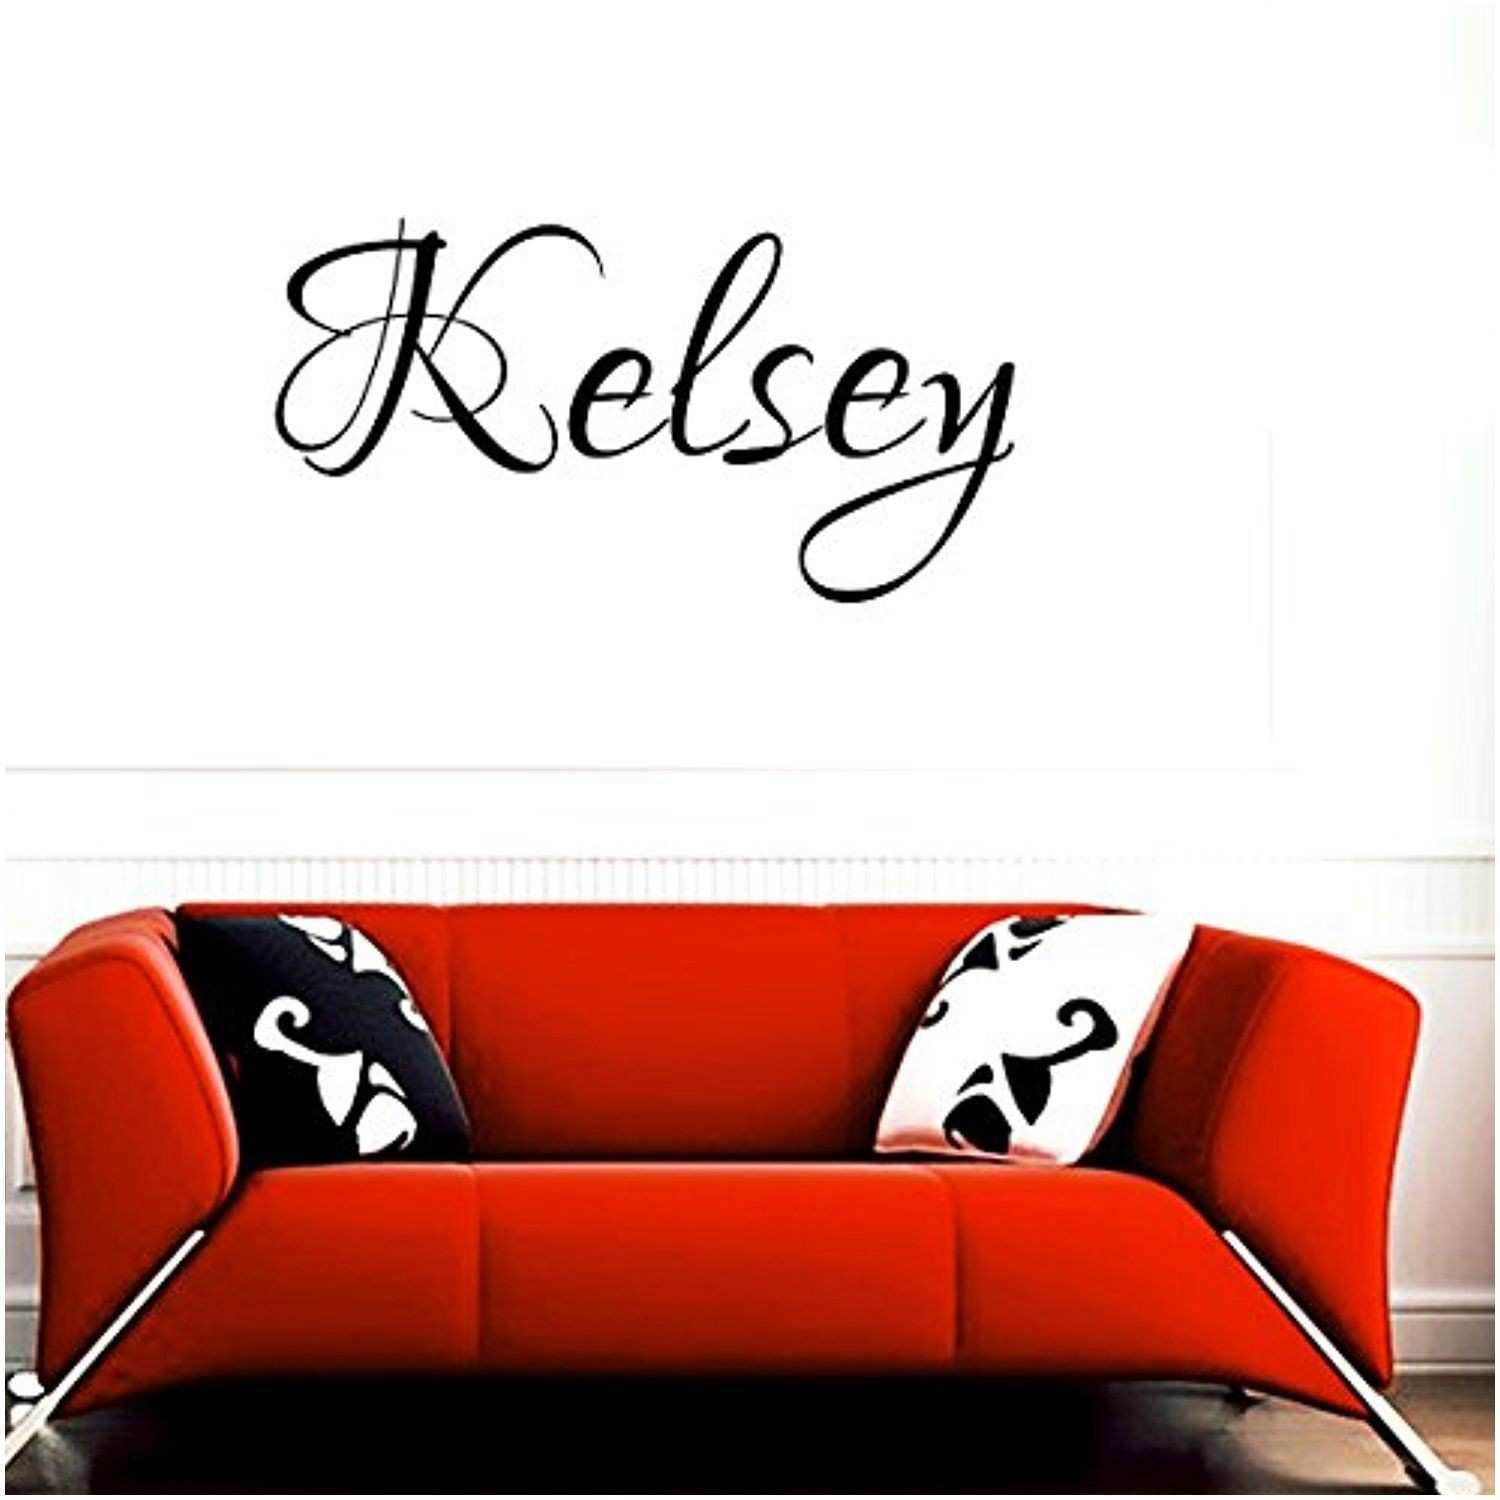 Wall Decal Letters Kelsey Girl Name Boy Name Letters Childrens Room